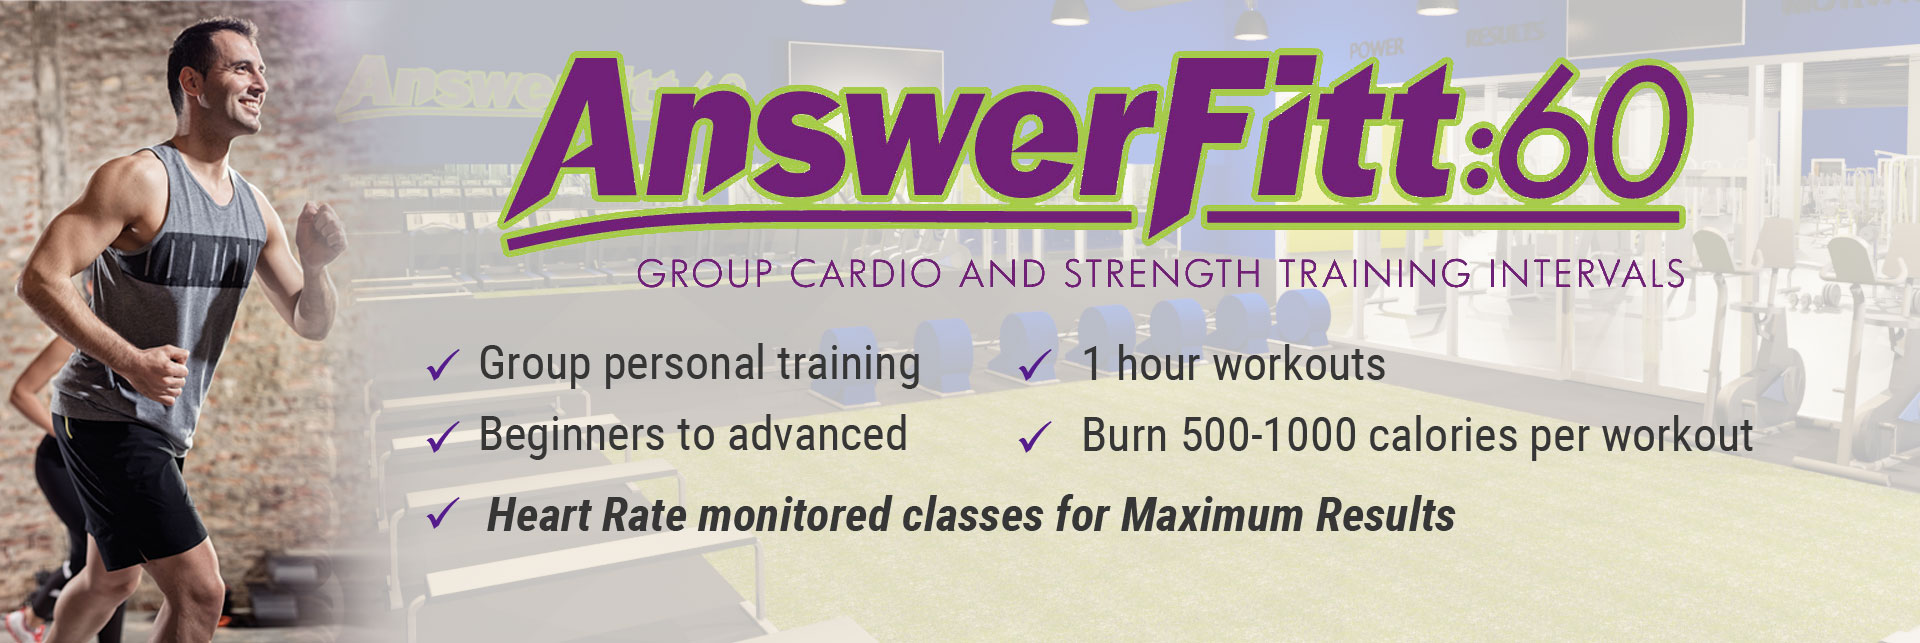 Answer is Fitness - AnswerFitt:60 - North Attleboro, MA